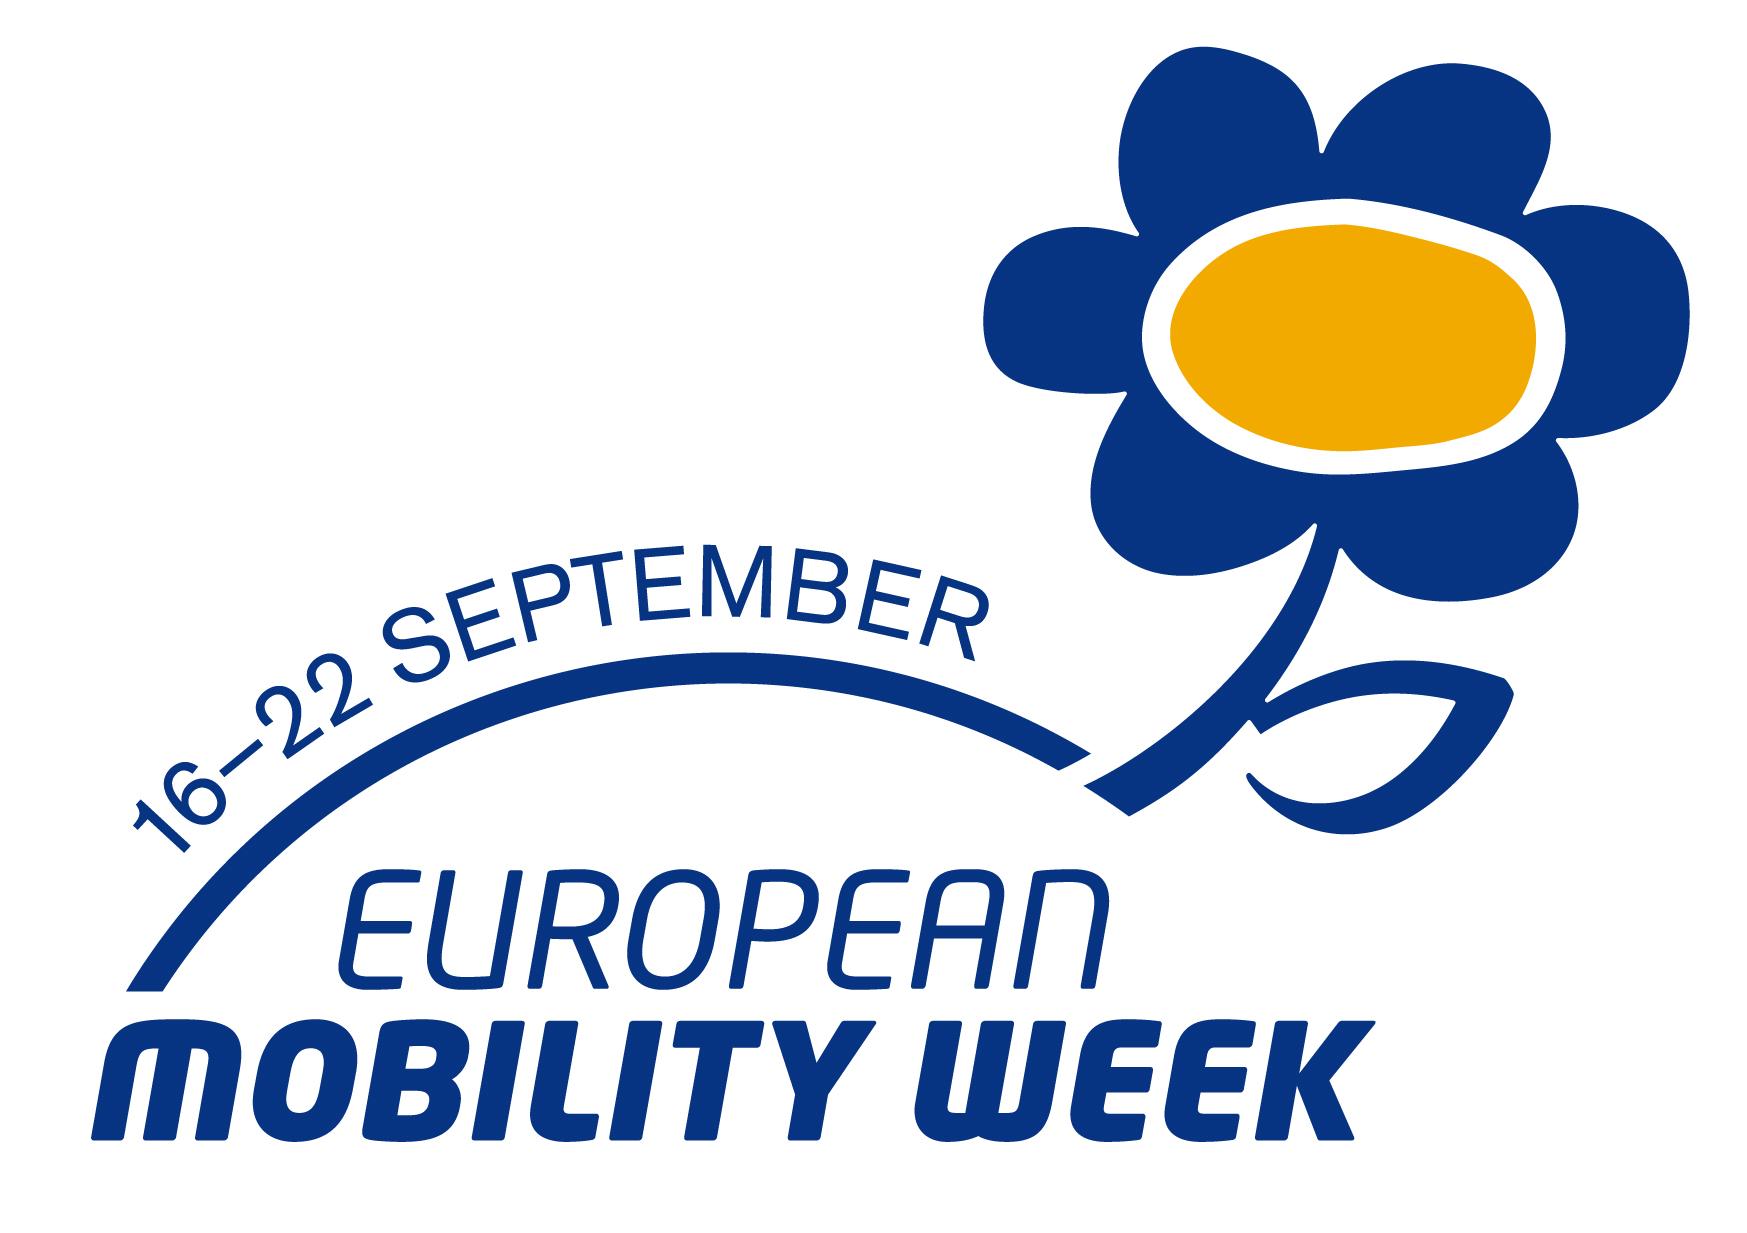 European Mobility Week 2016 kicks off across the continent